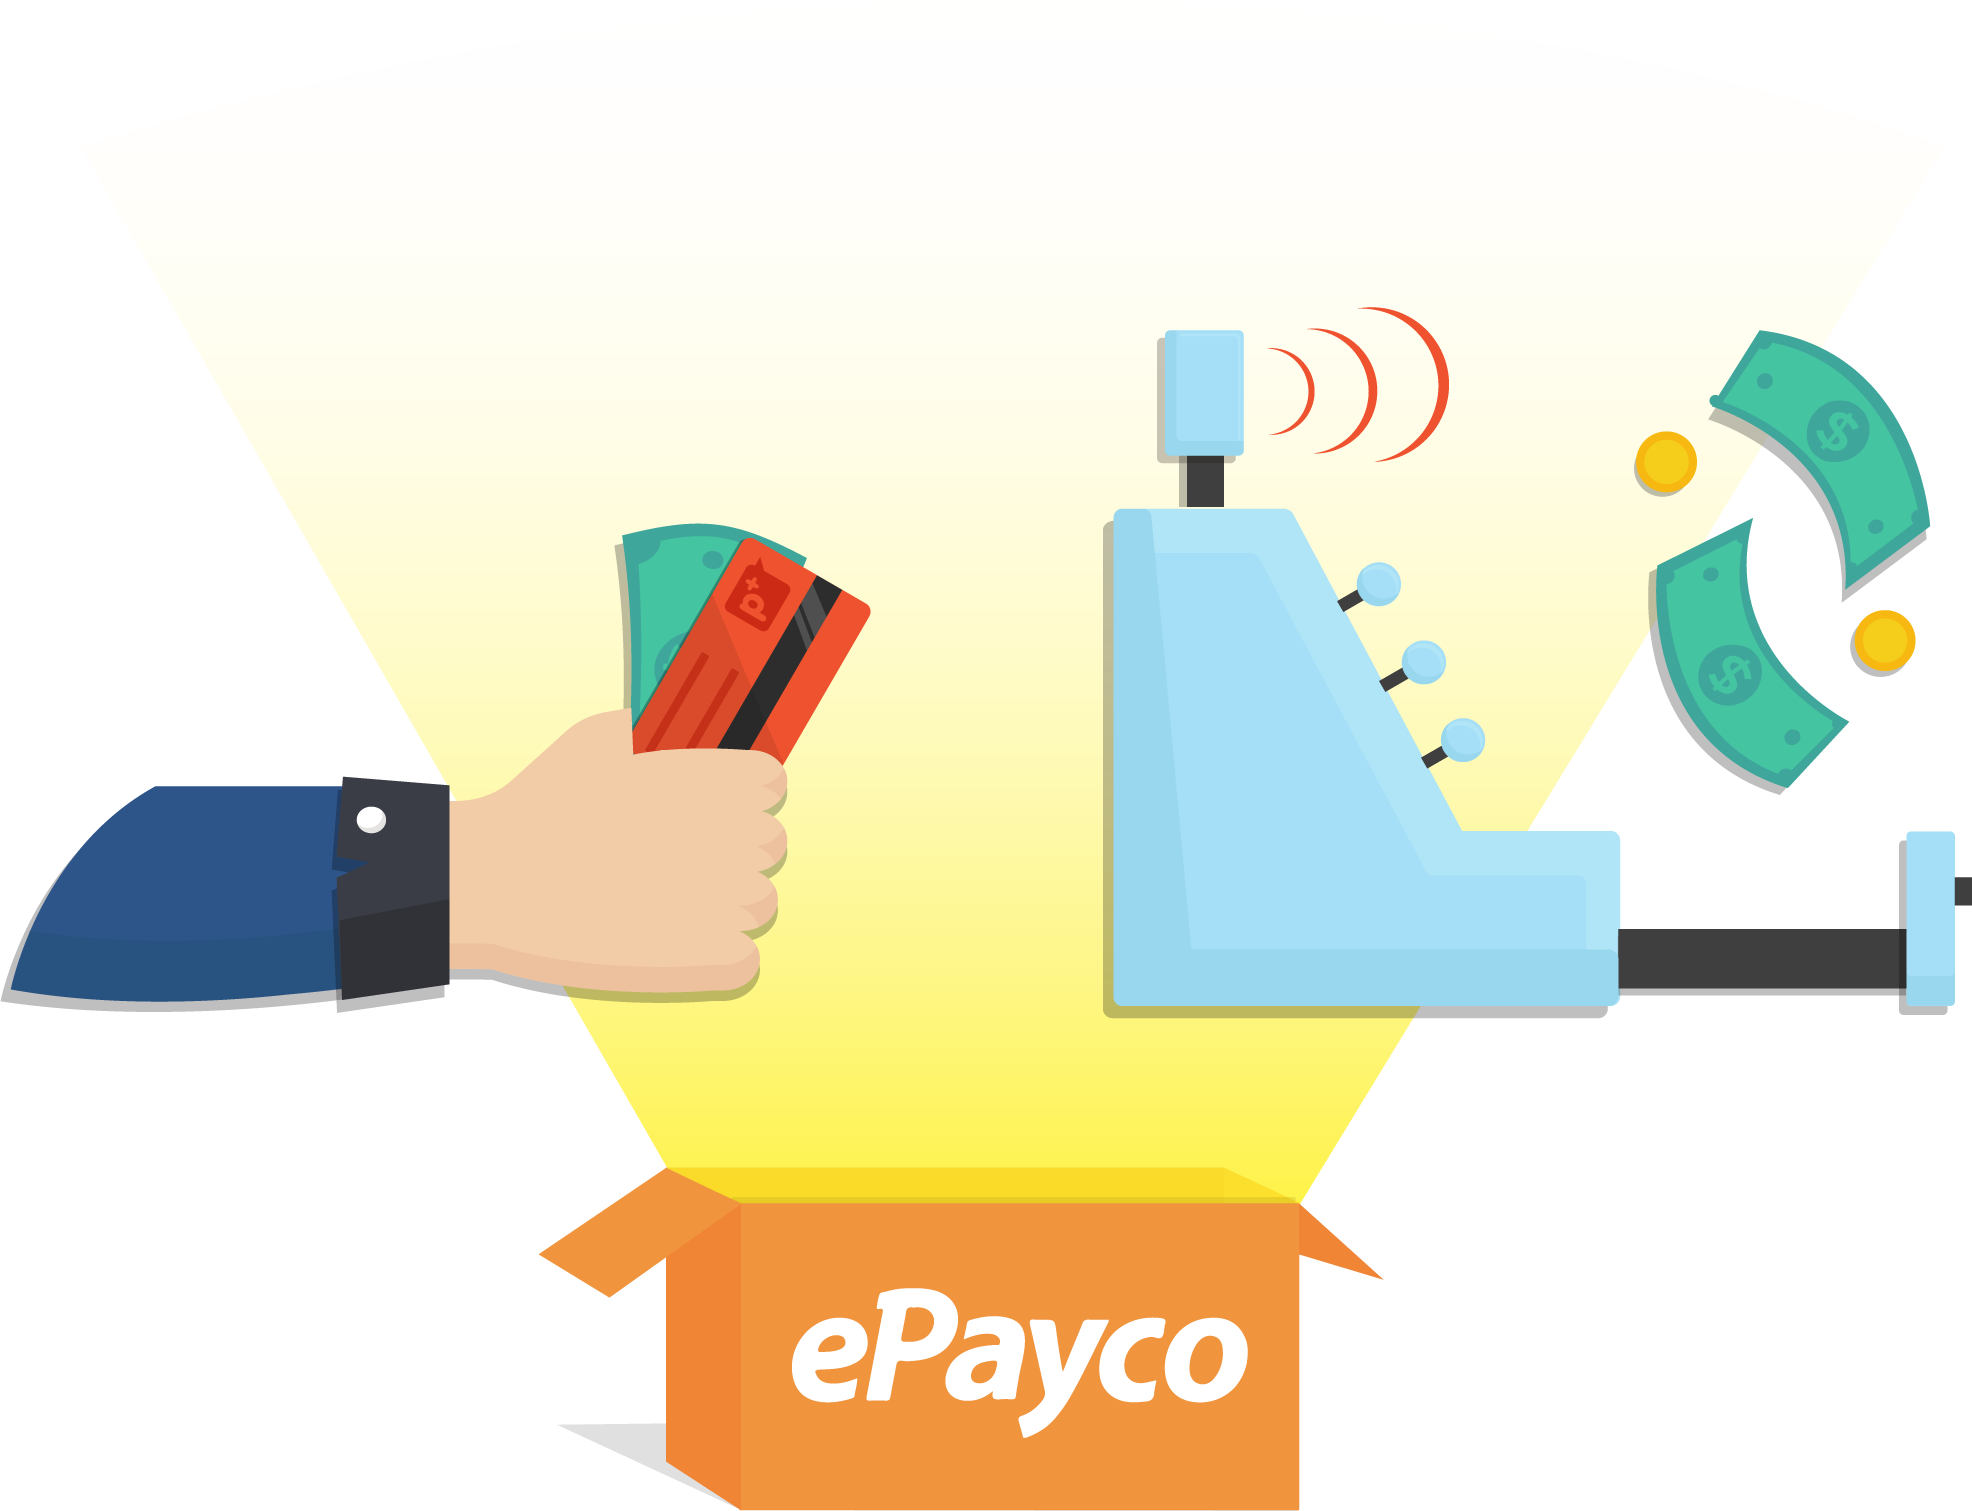 ePayco - Colombian Payment Method